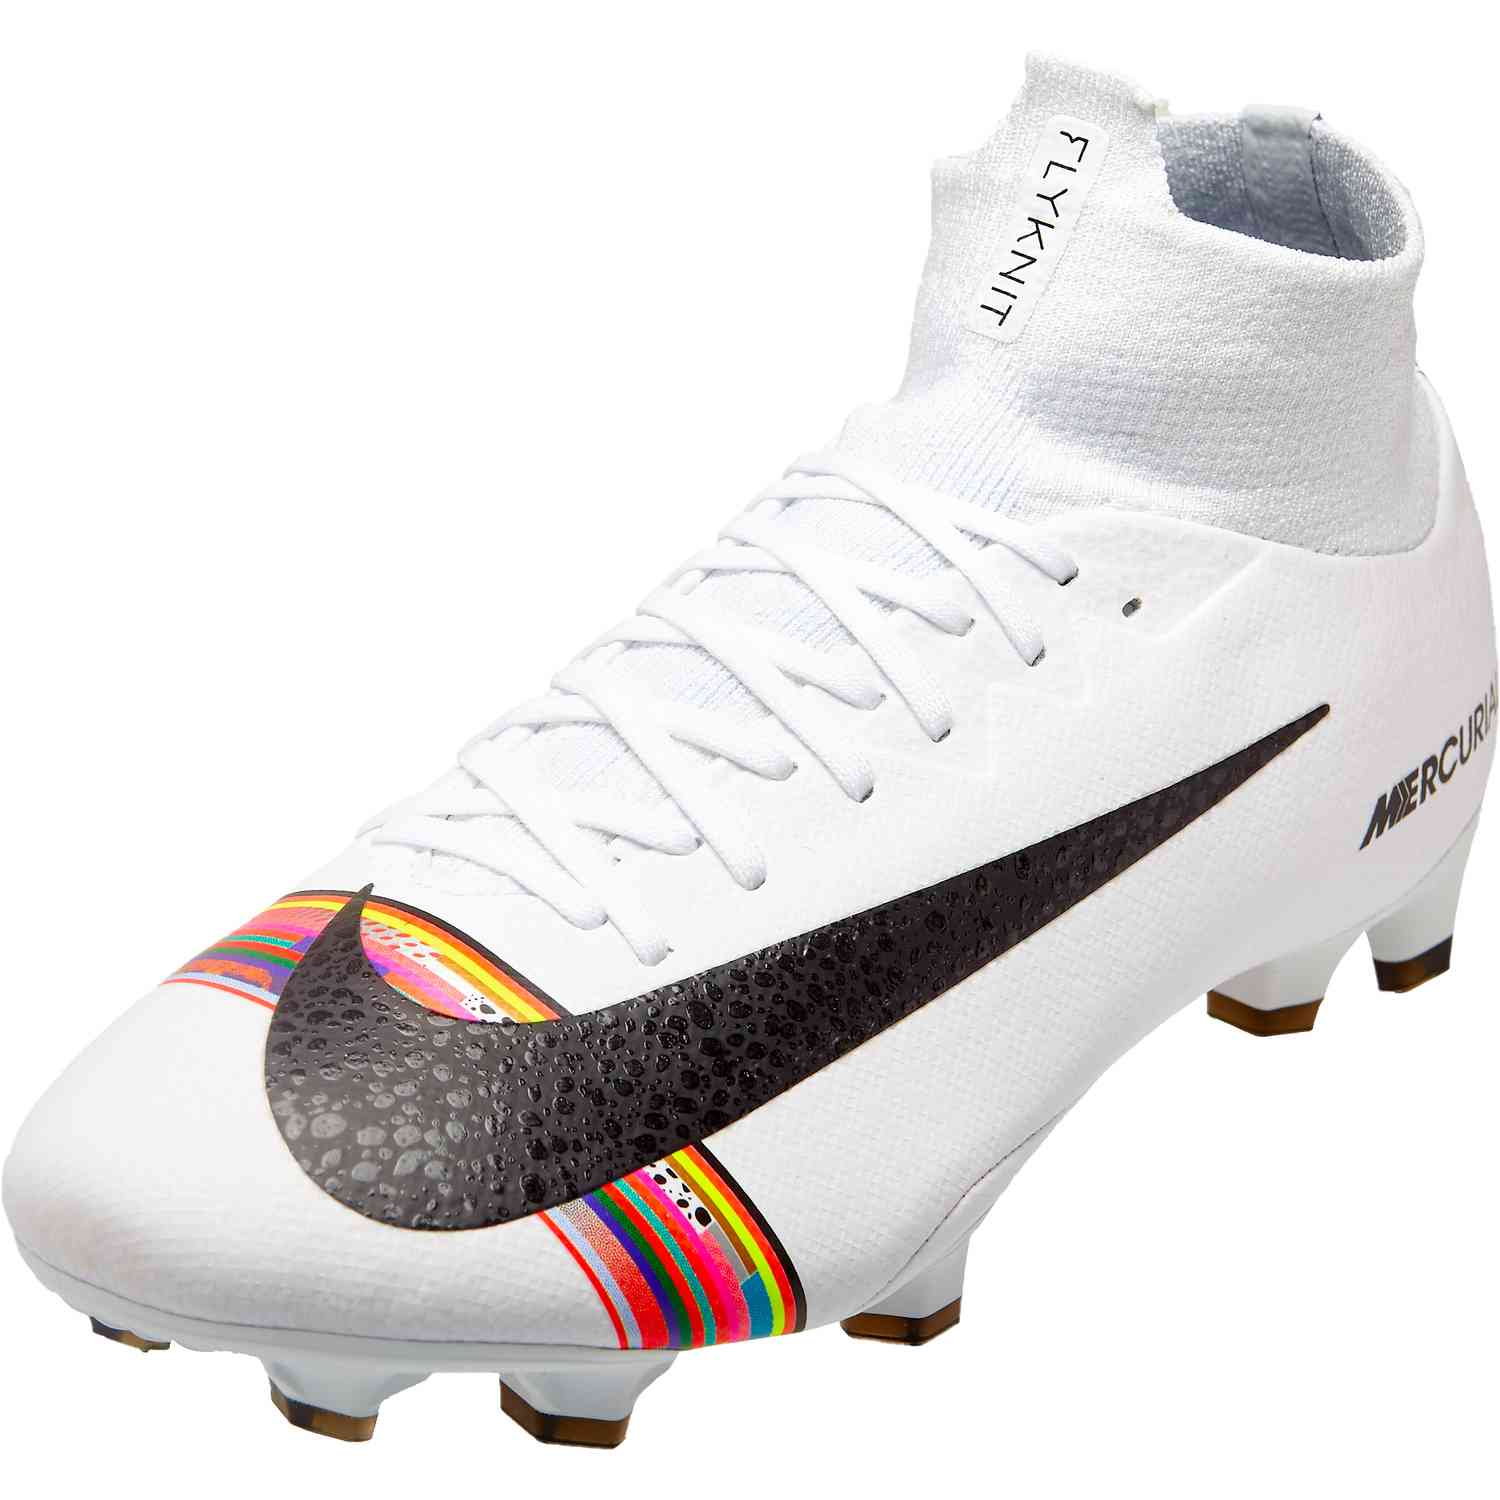 d05bdc220 Nike Mercurial Superfly 6 Pro FG - Level Up - Soccer Master